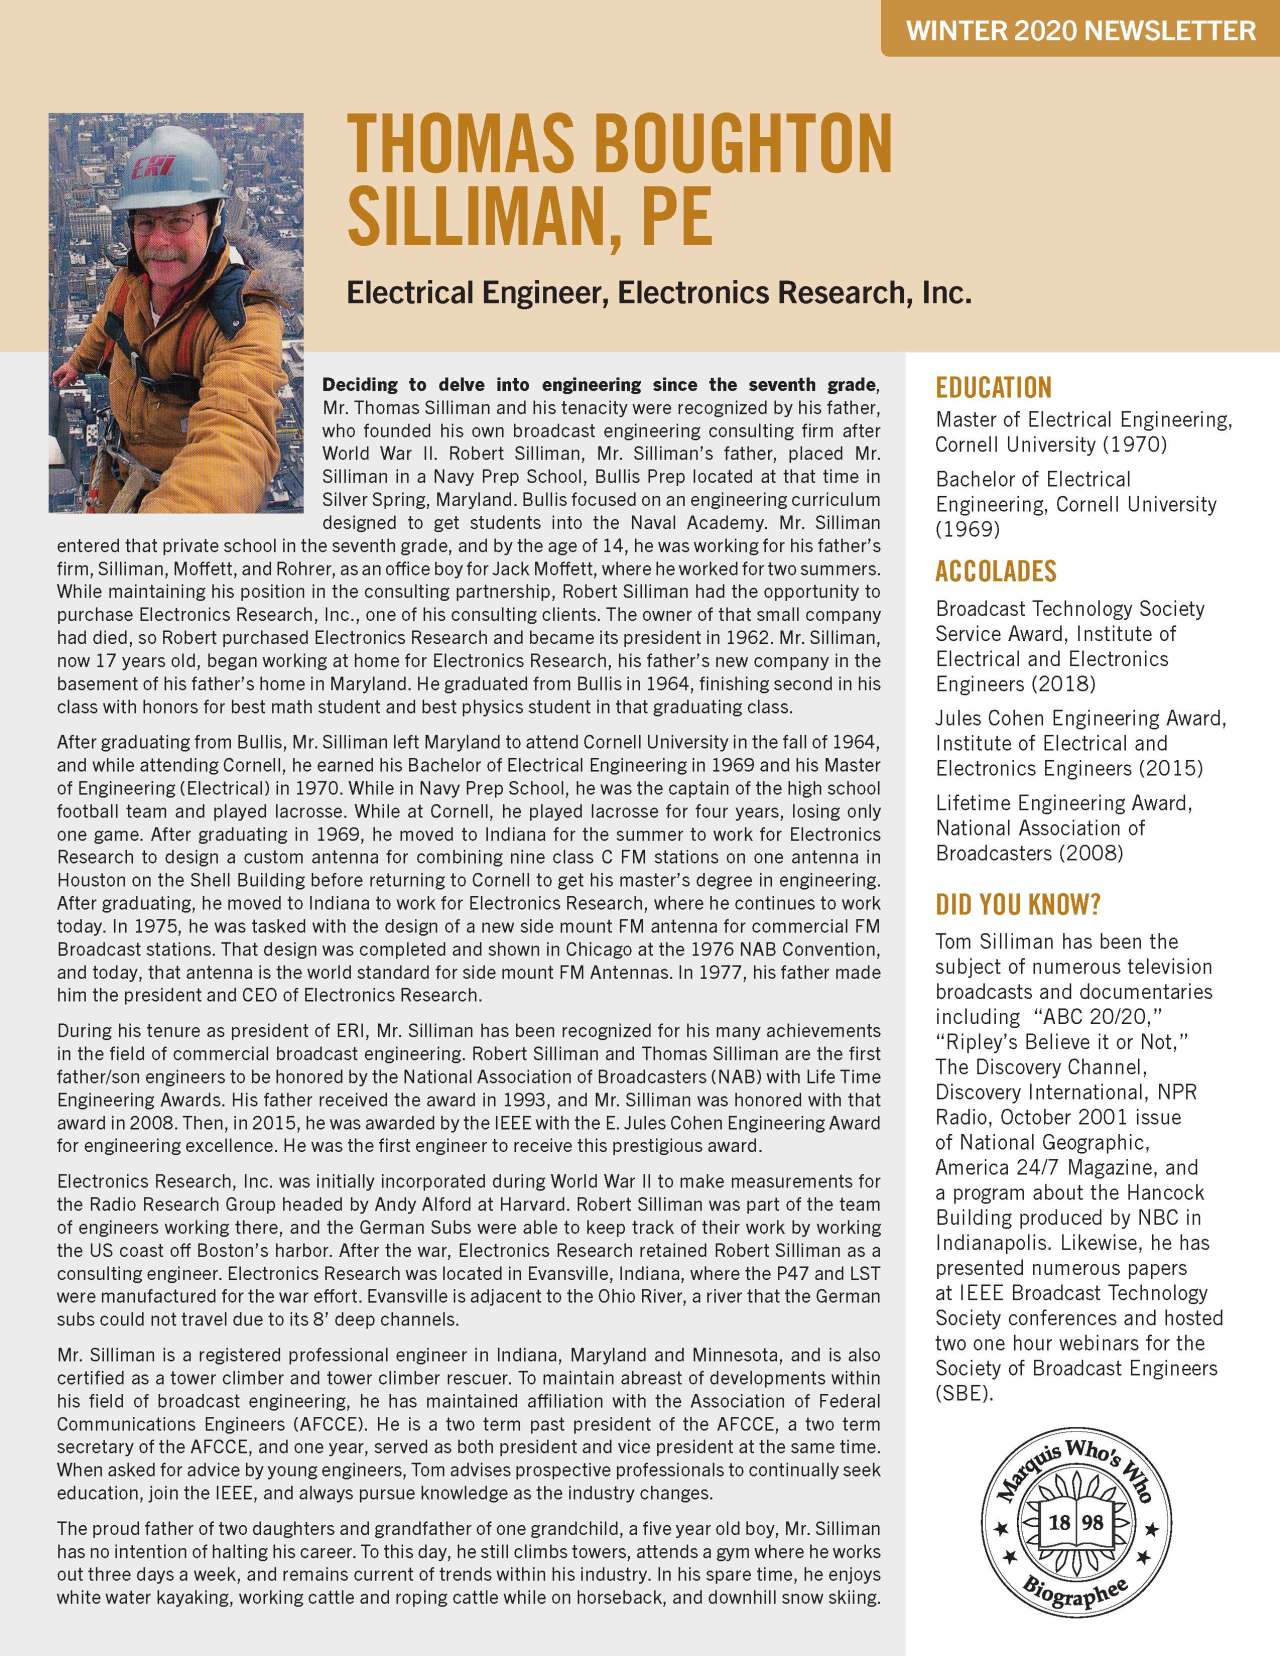 Silliman, Thomas 4562397_27954255 Newsletter